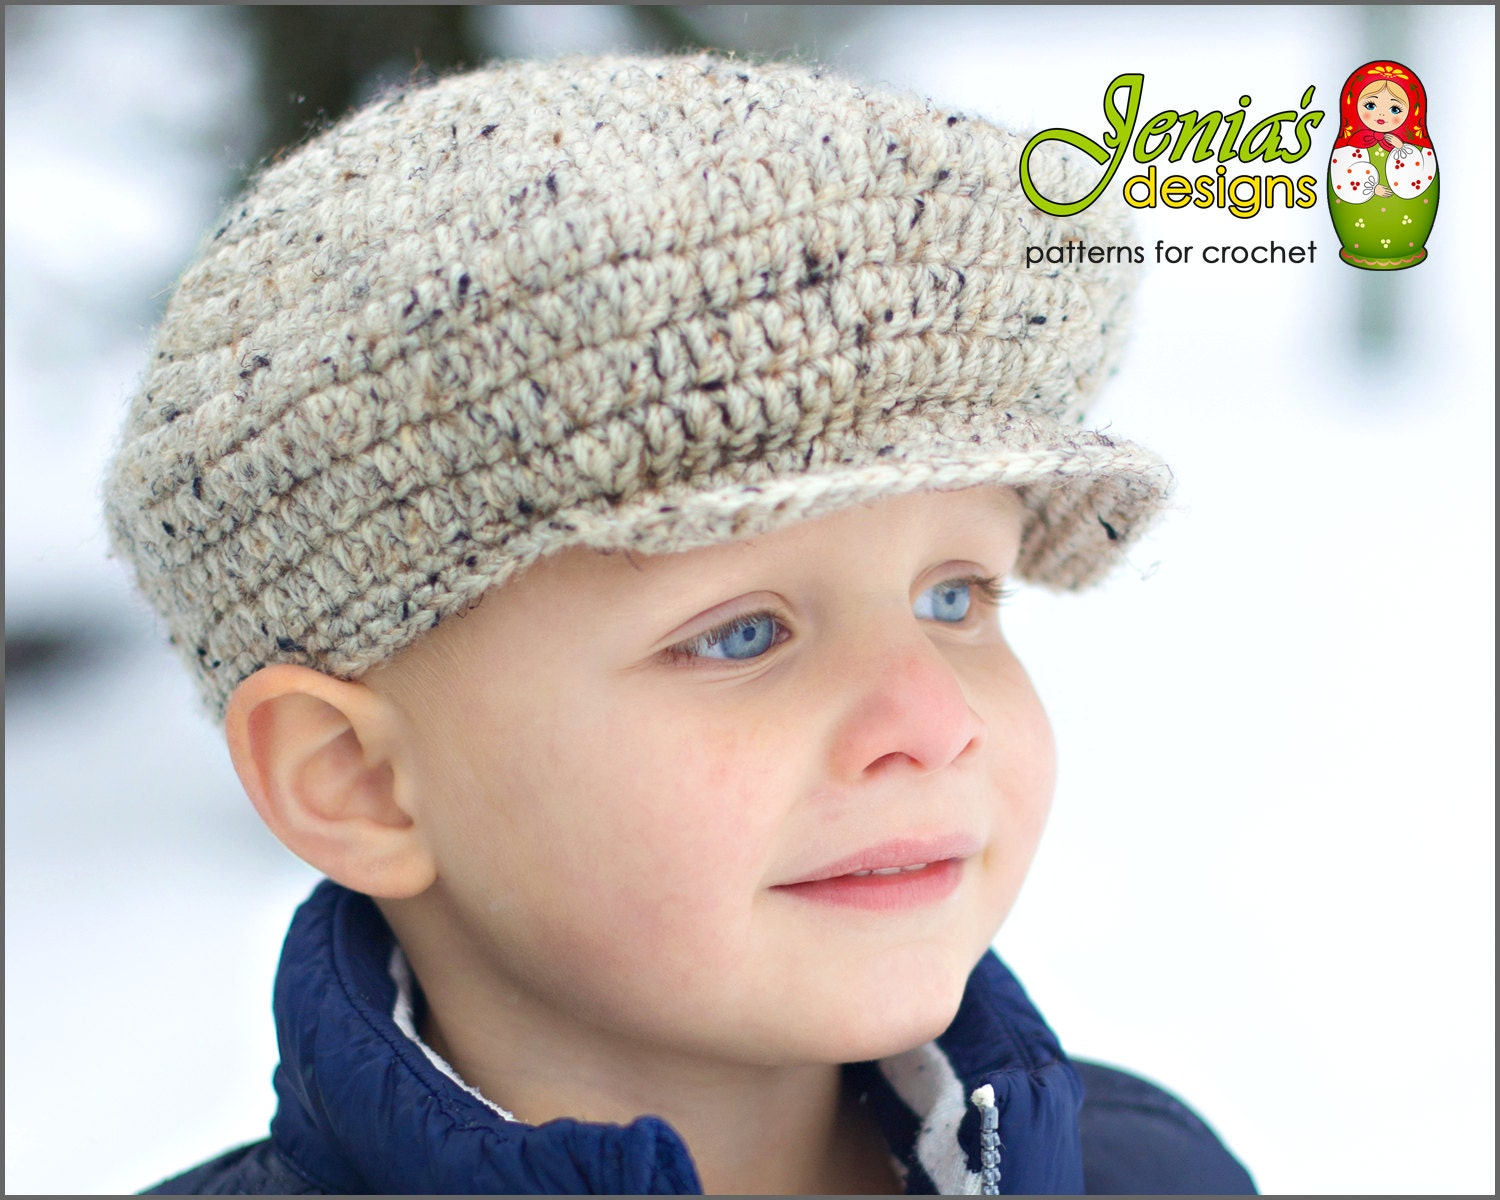 """The Scally Cap style (AKA driver's or flat cap) has been around for centuries. Crochet yourself a timeless Scally Cap, without losing the authentic """"sewn"""" quality and shape. Crochet Baby Hat, Baby Bear Hat, Baby Girl Hat, Girl Bear Hat, Infant Bear Hat, Infant Girl Hat, Newborn Girl Hat, Newborn Bear Hat, Ivory. Ingyenes Horgolás."""